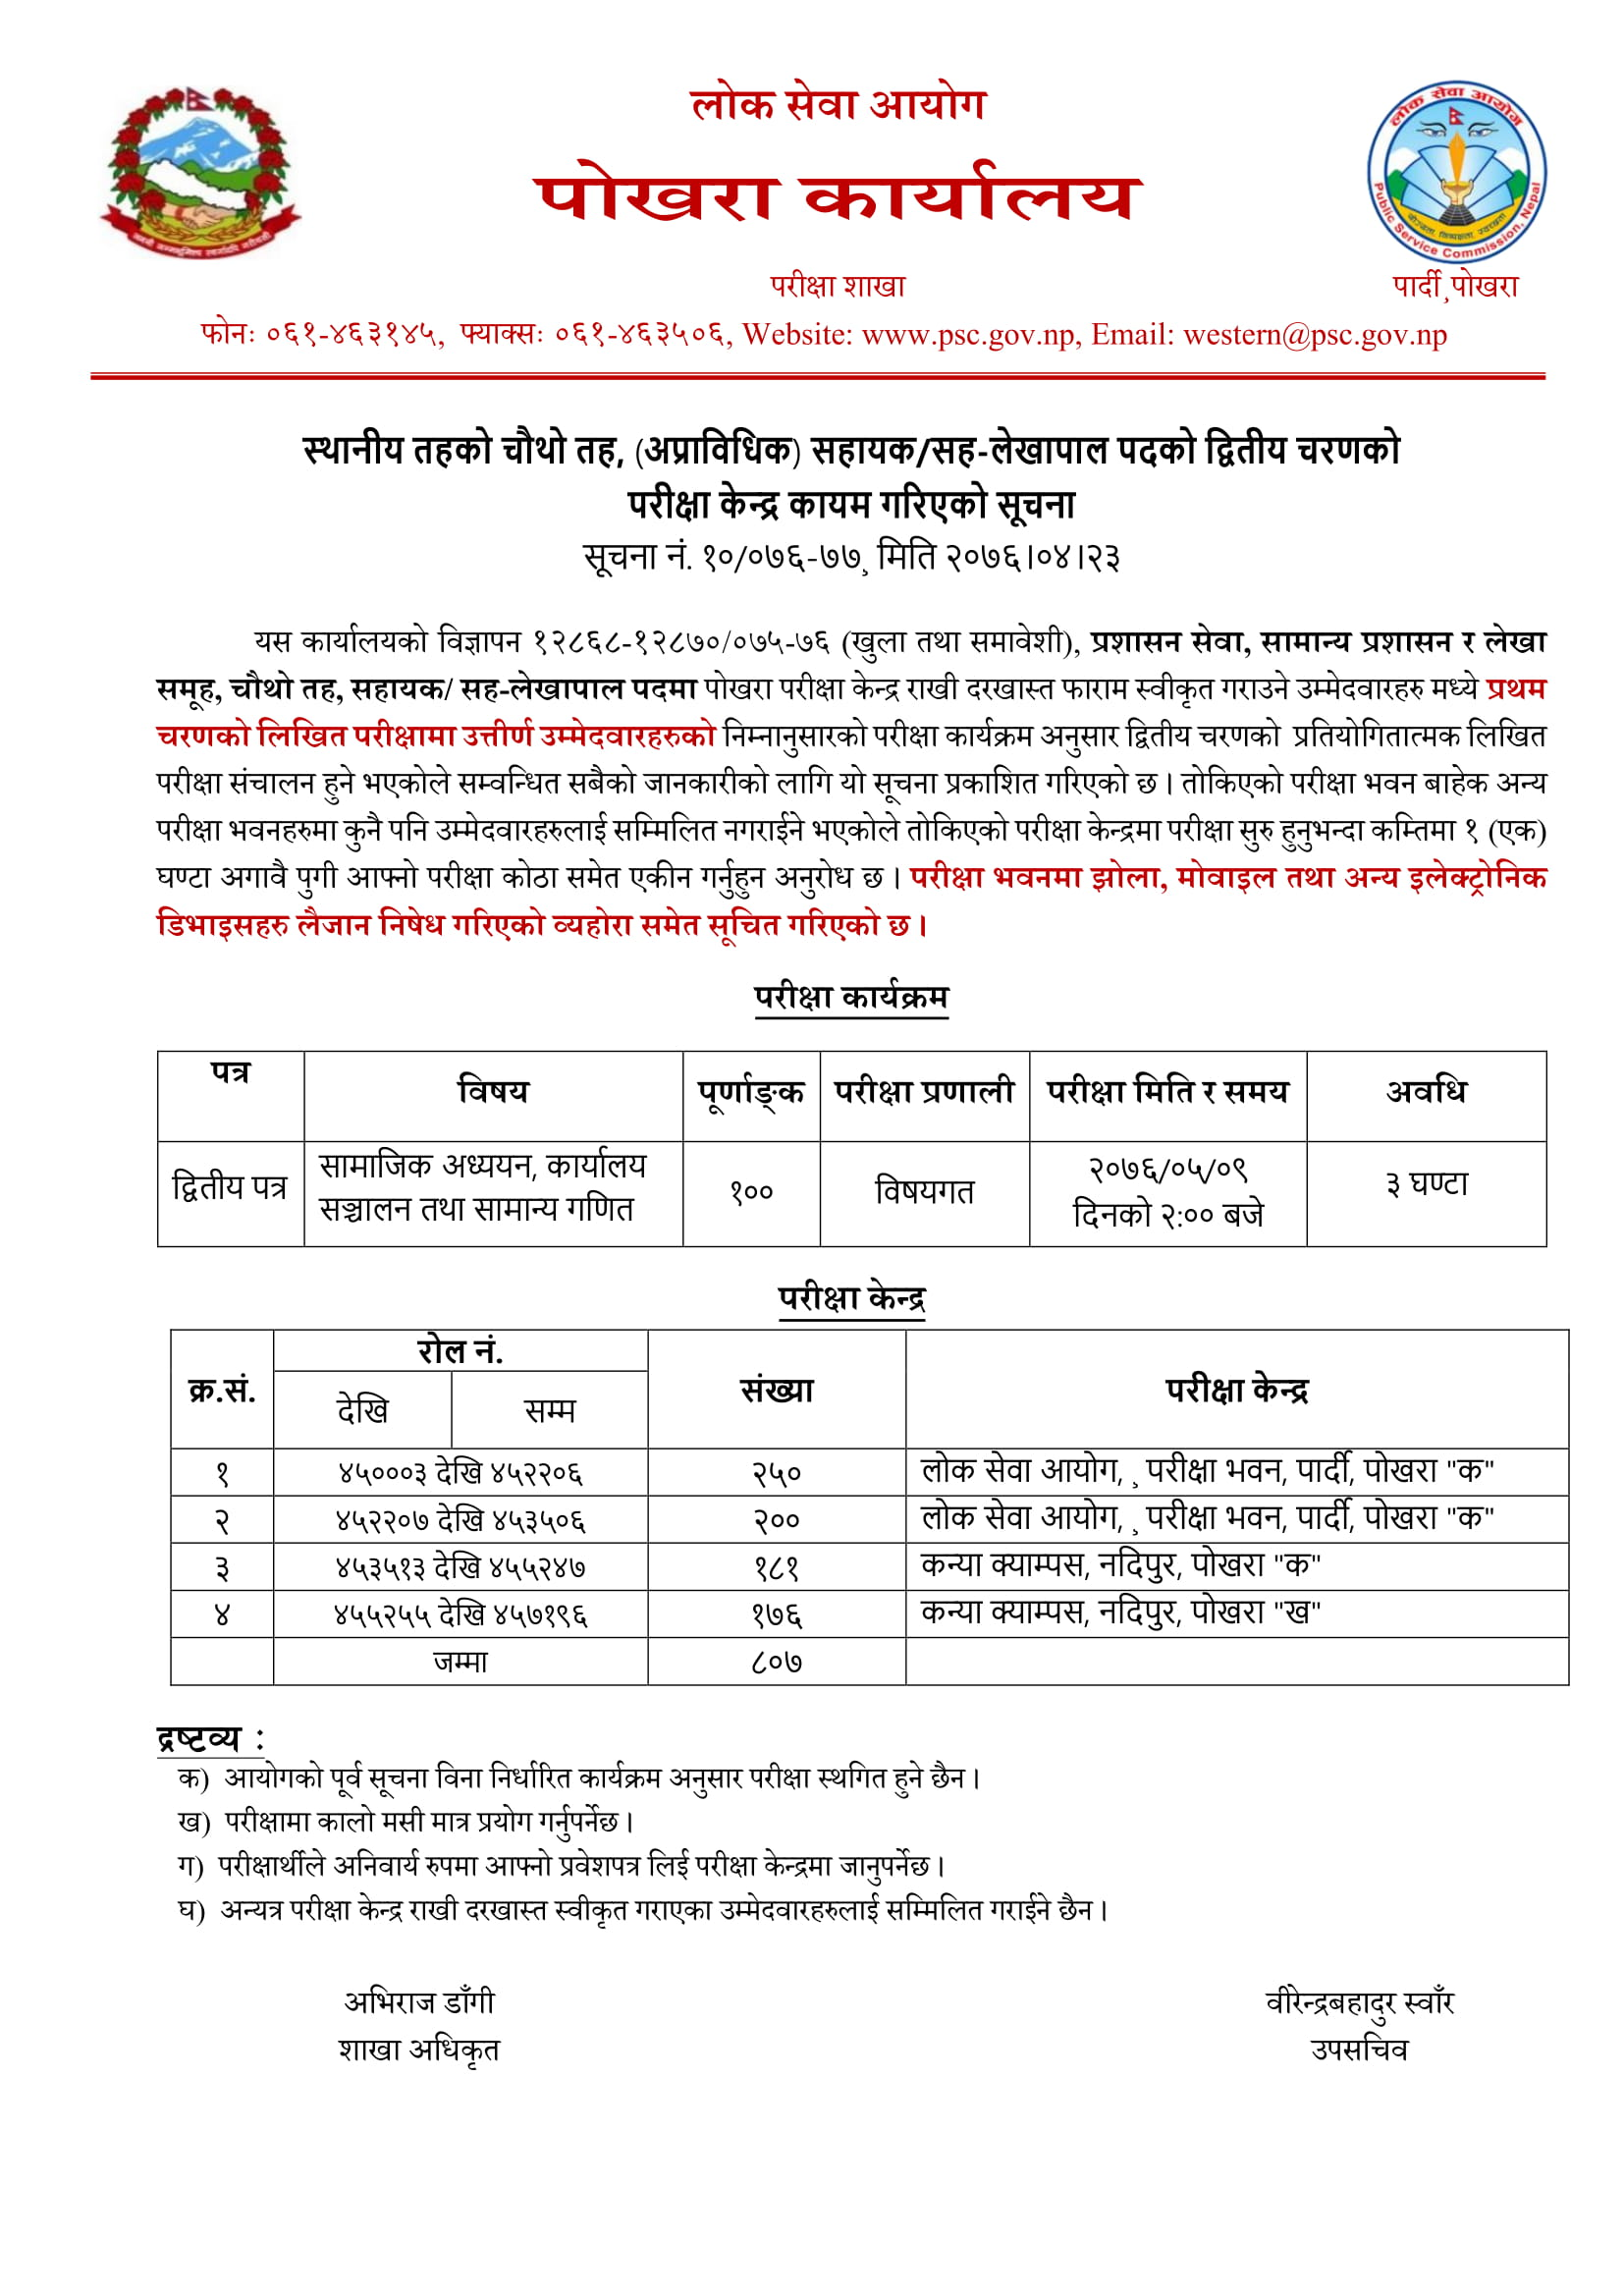 View another District/Zone/Province 4th level Second Phase Exam Center1. Download and view Sthaniya Taha Lok Sewa Aayog Kharidar Second Paper Exam Center - Khotang2. Download and view Sthaniya Taha Lok Sewa Aayog Kharidar Second Paper Exam Center - Pokhara3. Download and view Sthaniya Taha Lok Sewa Aayog Kharidar Second Paper Exam Center - Ilam4. Download and view Sthaniya Taha Lok Sewa Aayog Kharidar Second Paper Exam Center - JaleshwarPSC Nepal Kathmandu Exam center 2076Sthanaya Taha Lok Sewa Aayog Nepal Exam centers for Bagmati Zone Kathmandu. There are the first terminal entrance exam center candidates. So that there are exam centers according to the examination roll number only.There is different Bagmati Zone Kathmandu. in the front of the exam roll number so it will not be much Bagmati Zone Kathmandu. to Entrance Exam center in the spot for the candidates. Still, if you have any confusion you can contact us.Lok Sewa Aayog Dhankuta Exam center 2076Sthanaya Taha Lok Sewa Aayog Exam centers for Dhankuta Zone. There is first terminal entrance exam center candidates. So that there is exam centers according to the examination roll number only.There is different Dhankuta Zone in the front of the exam roll number so it will not be much Dhankuta Zone to Entrance Exam center in the spot for the candidates. Still if you have any confusion you can contact us.